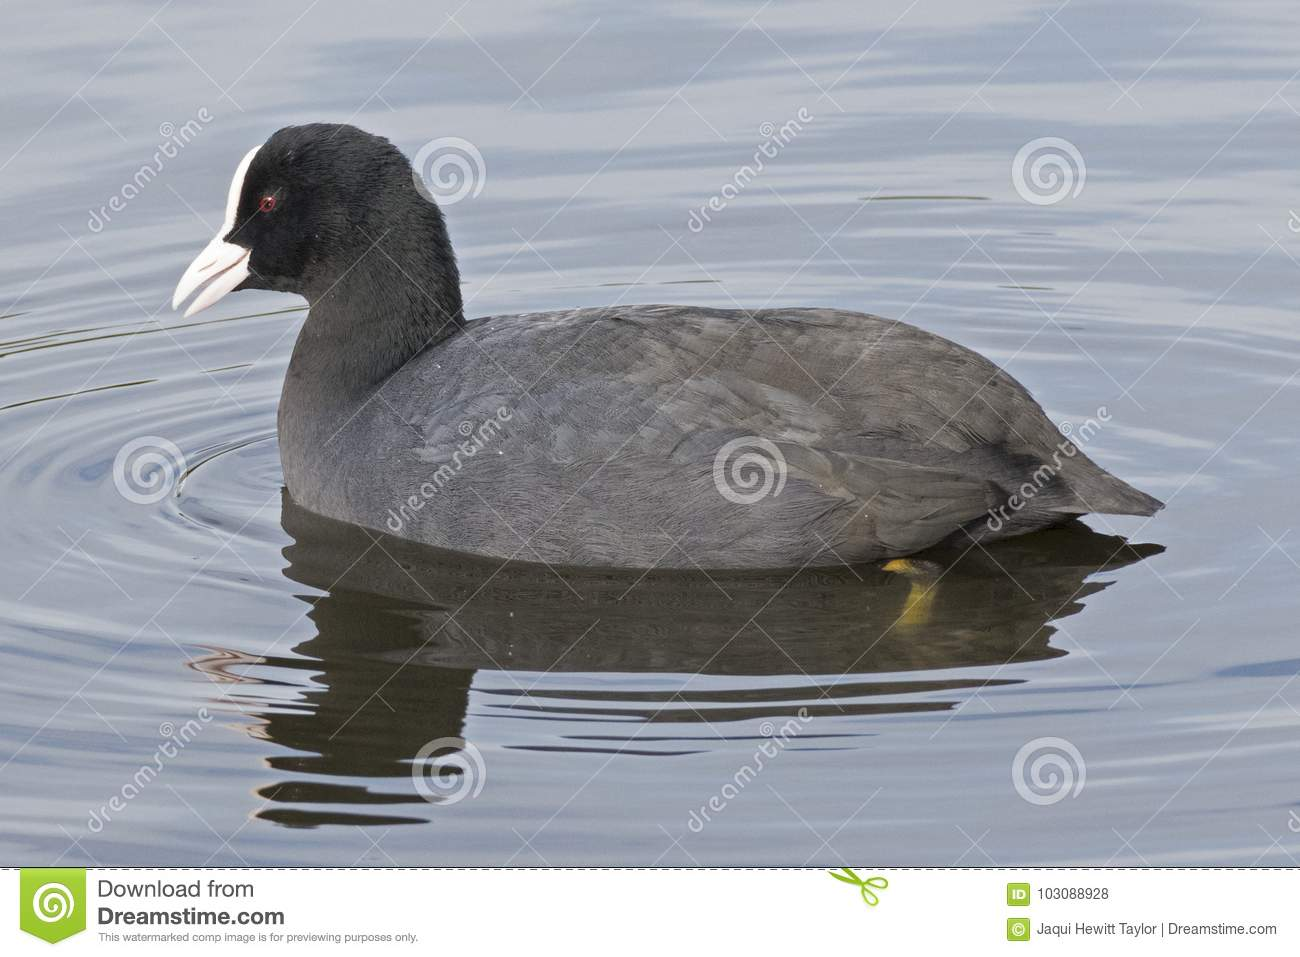 A coot on the water